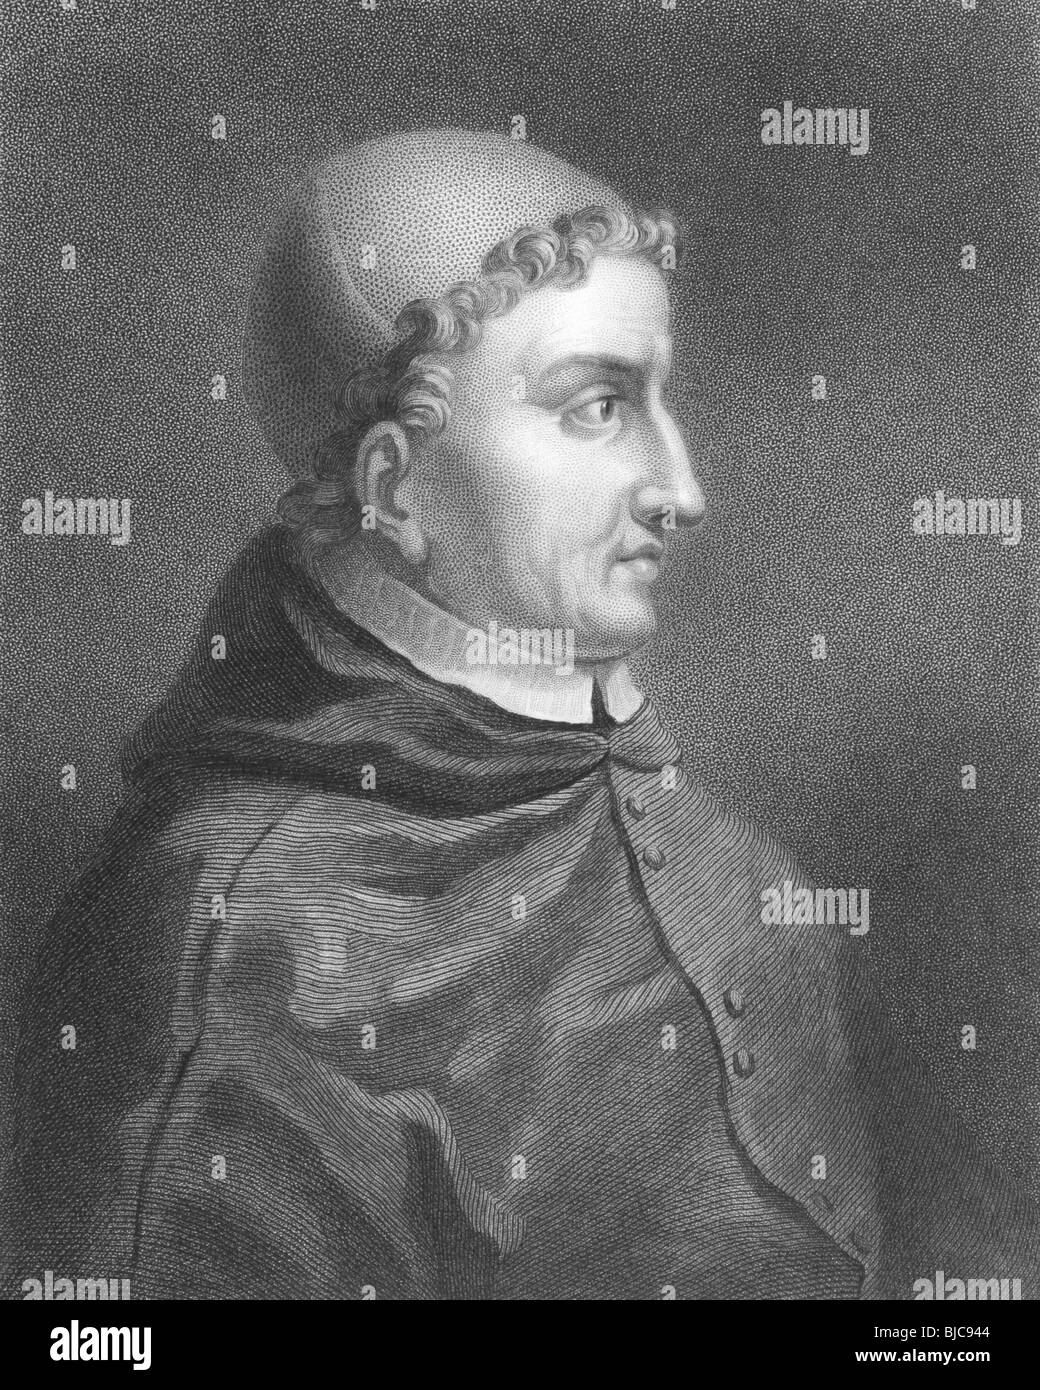 Francisco Jimenez de Cisneros (1436-1517) on engraving from the 1800s. Spanish cardinal and statesman. - Stock Image